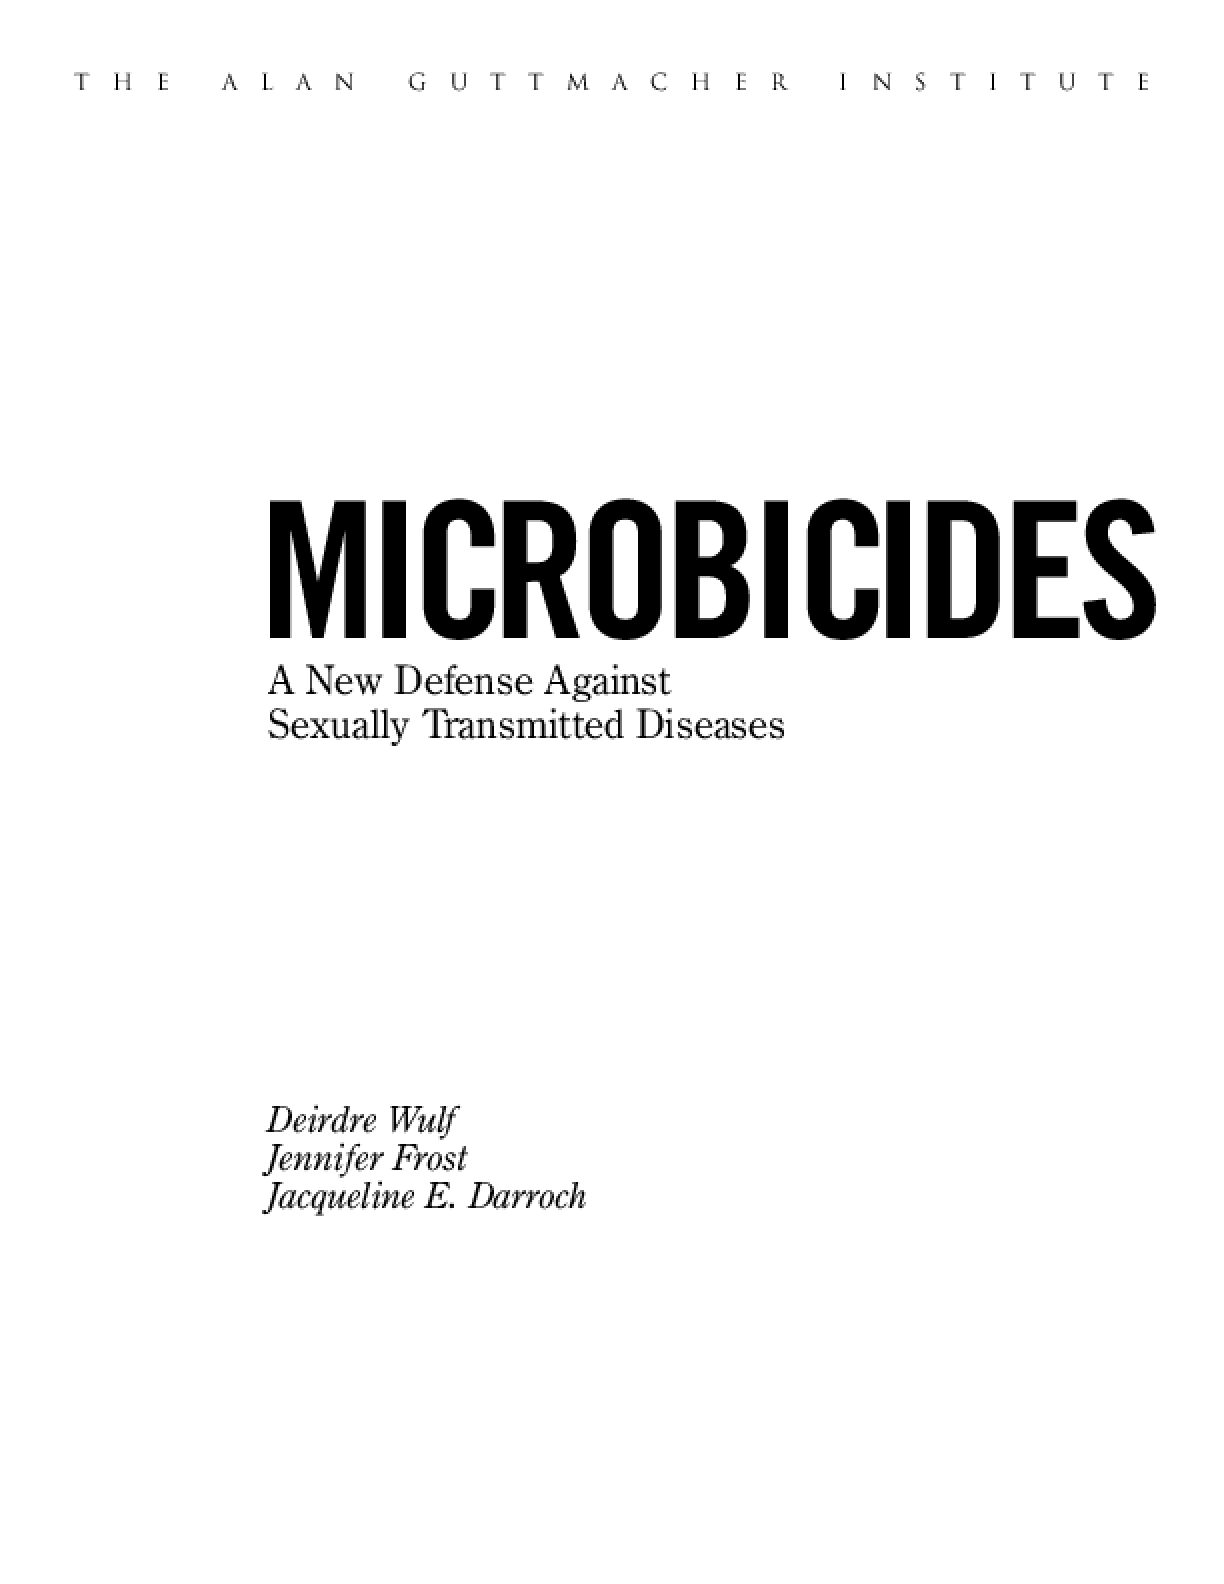 Microbicides: A New Defense Against Sexually Transmited Diseases